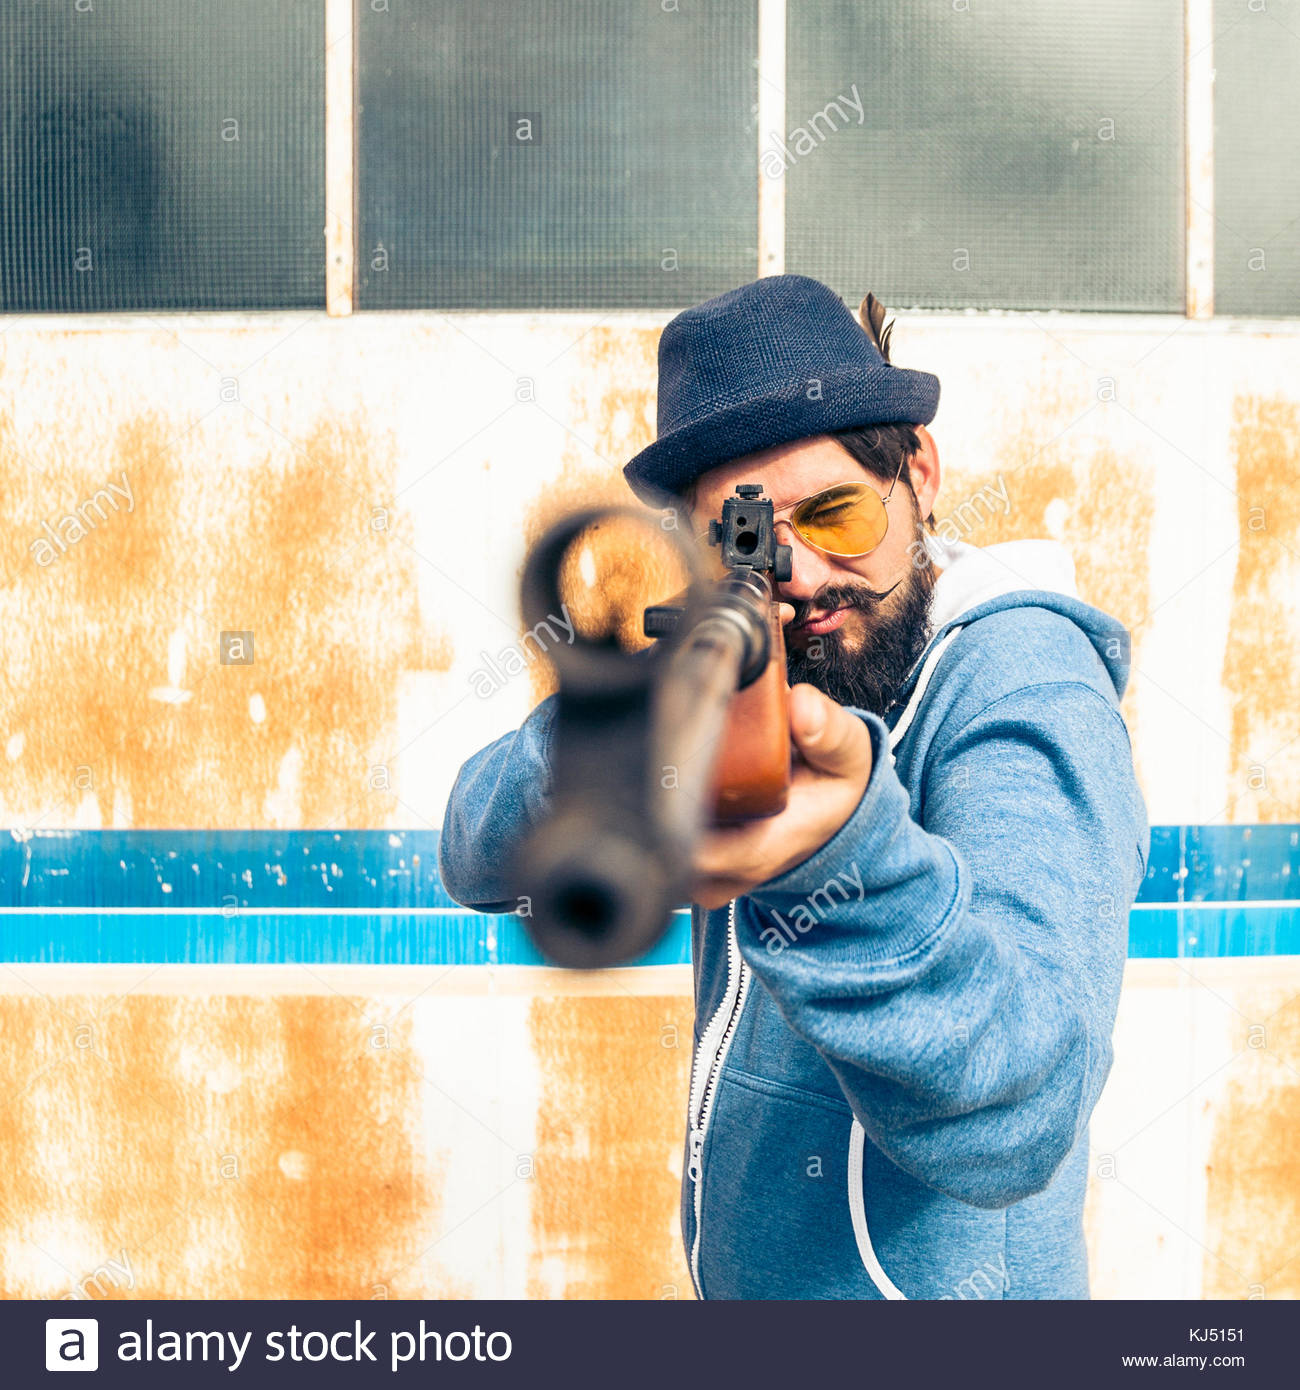 Man pointing the shotgun at a target - Stock Image